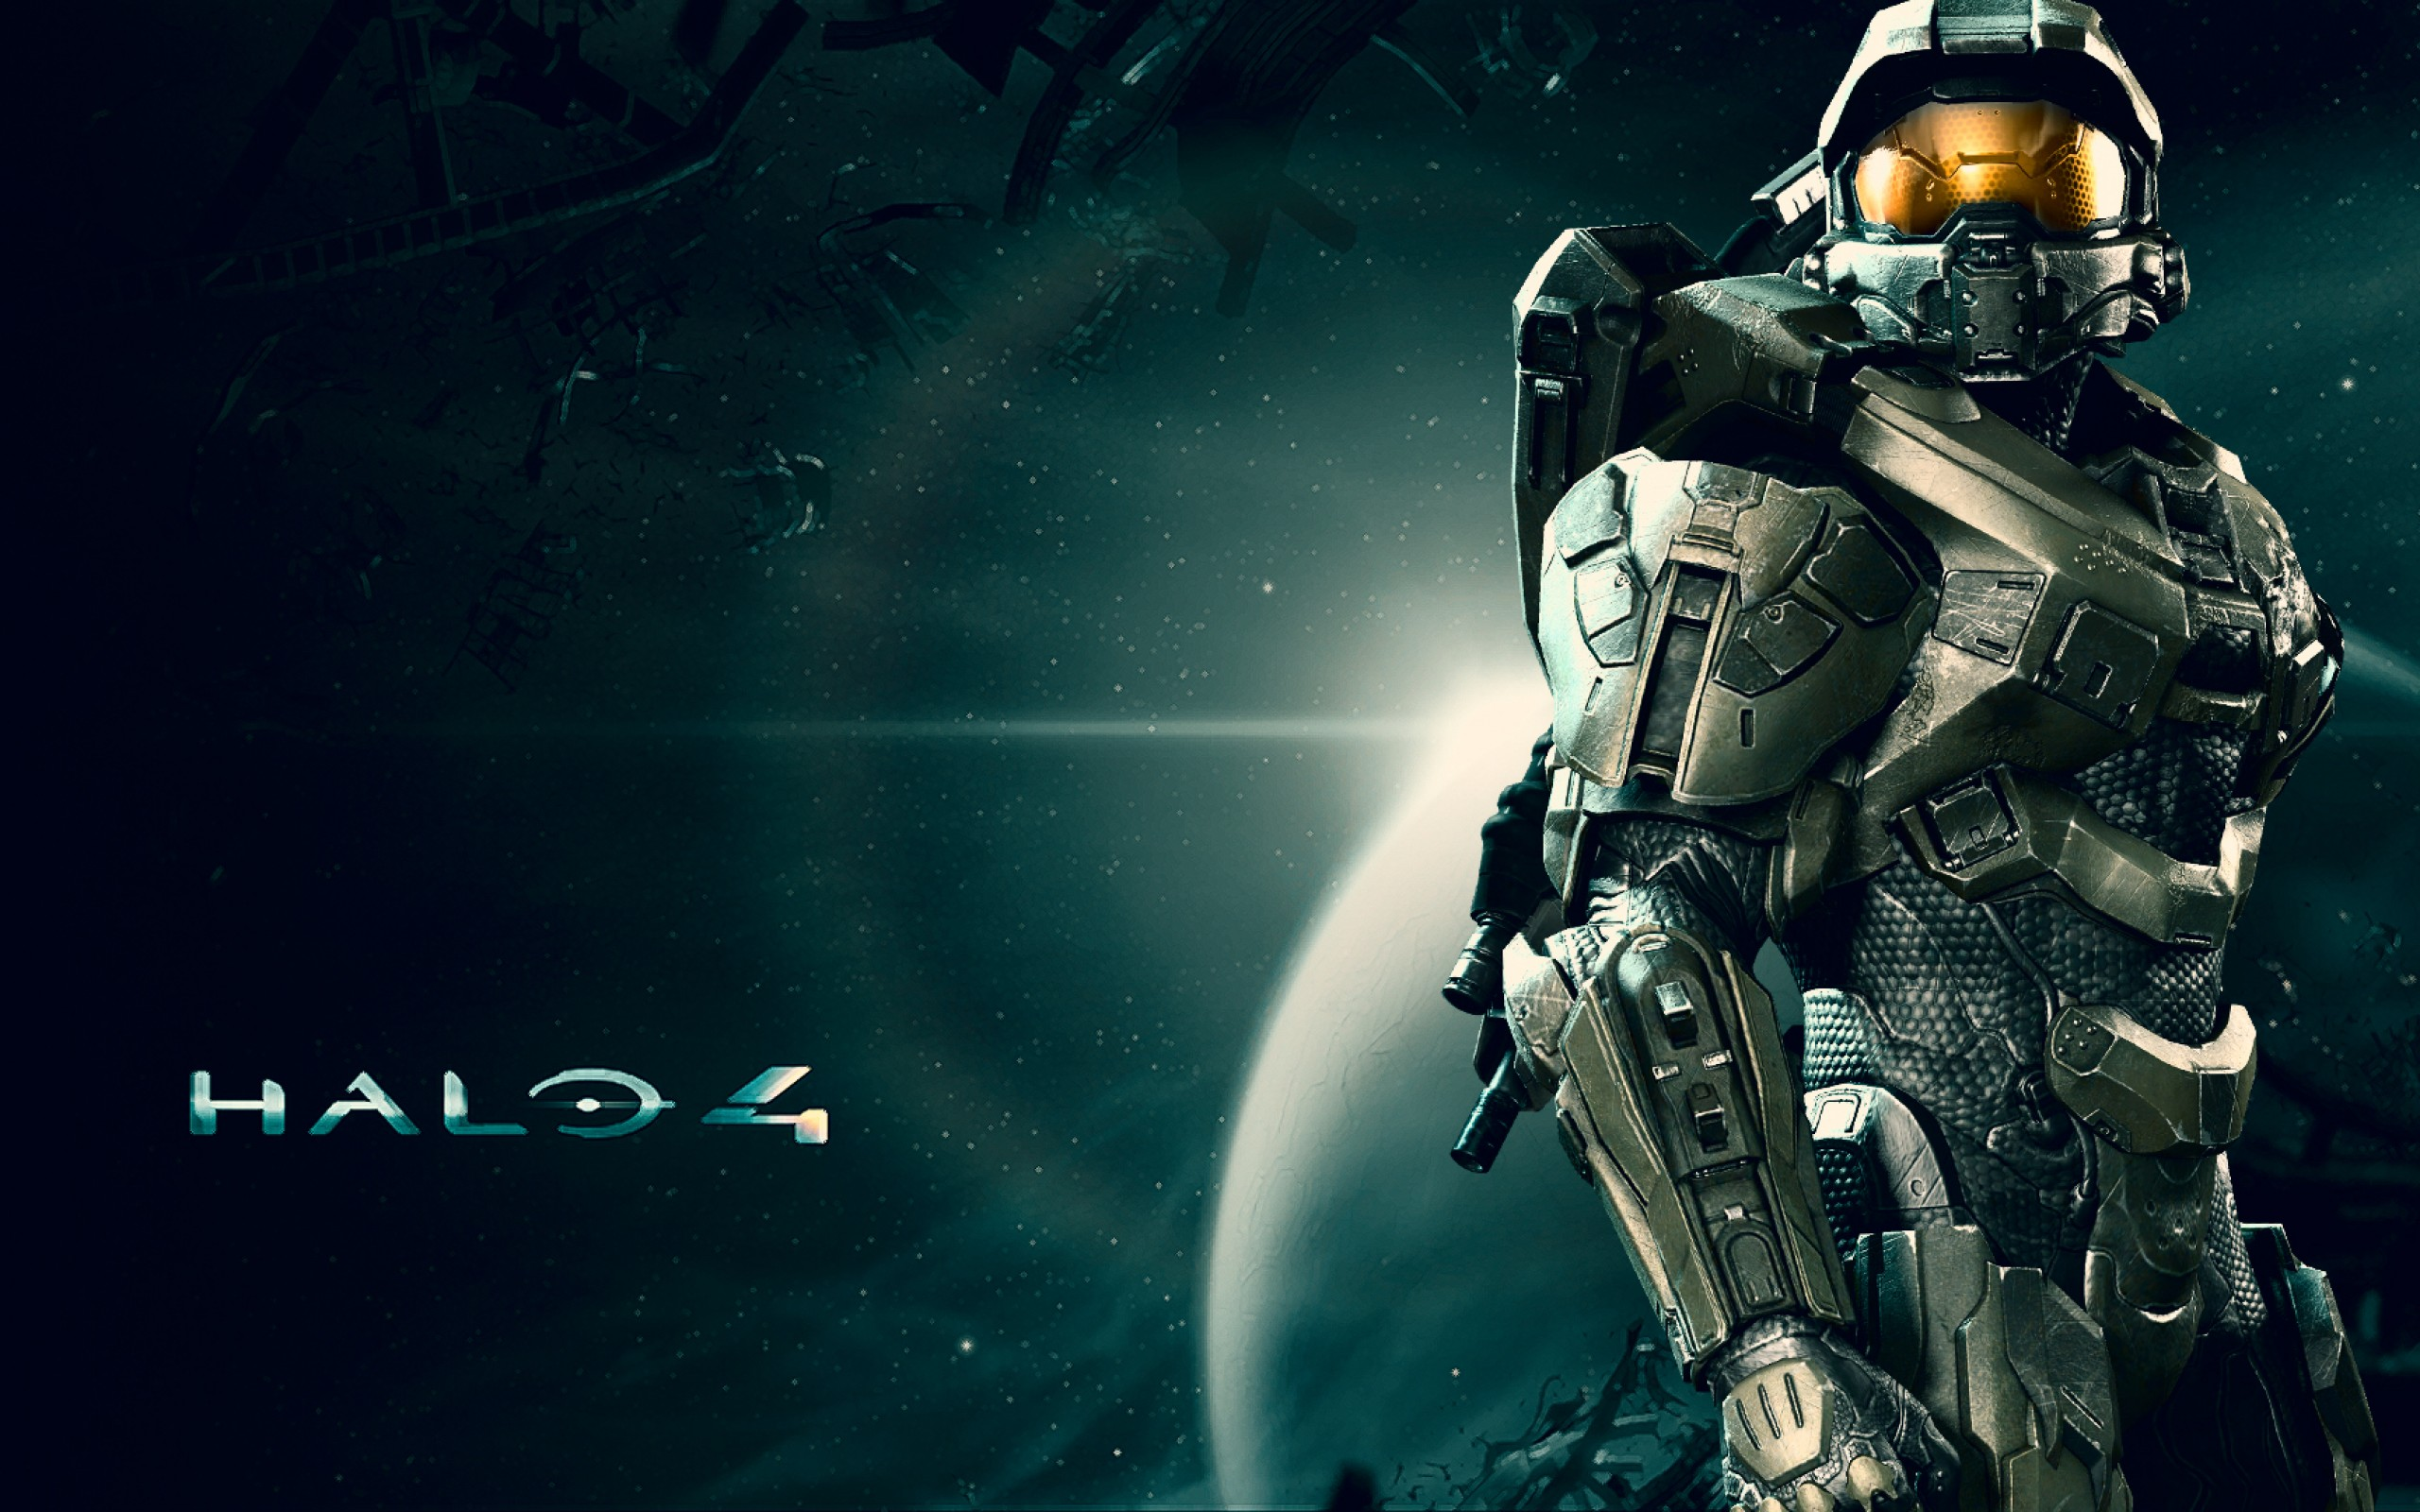 91 halo 4 hd wallpapers background images wallpaper abyss